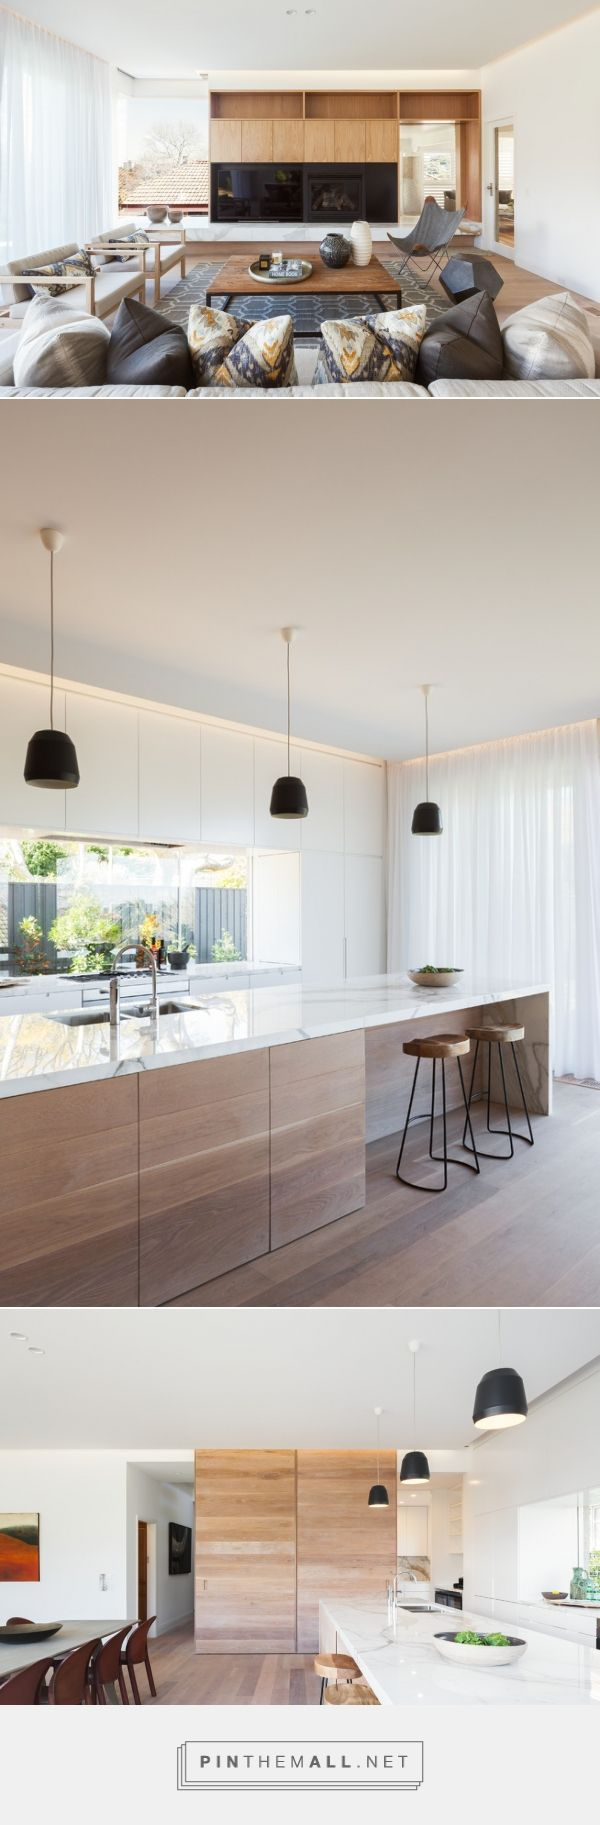 Lennox Street House by Corben Architects